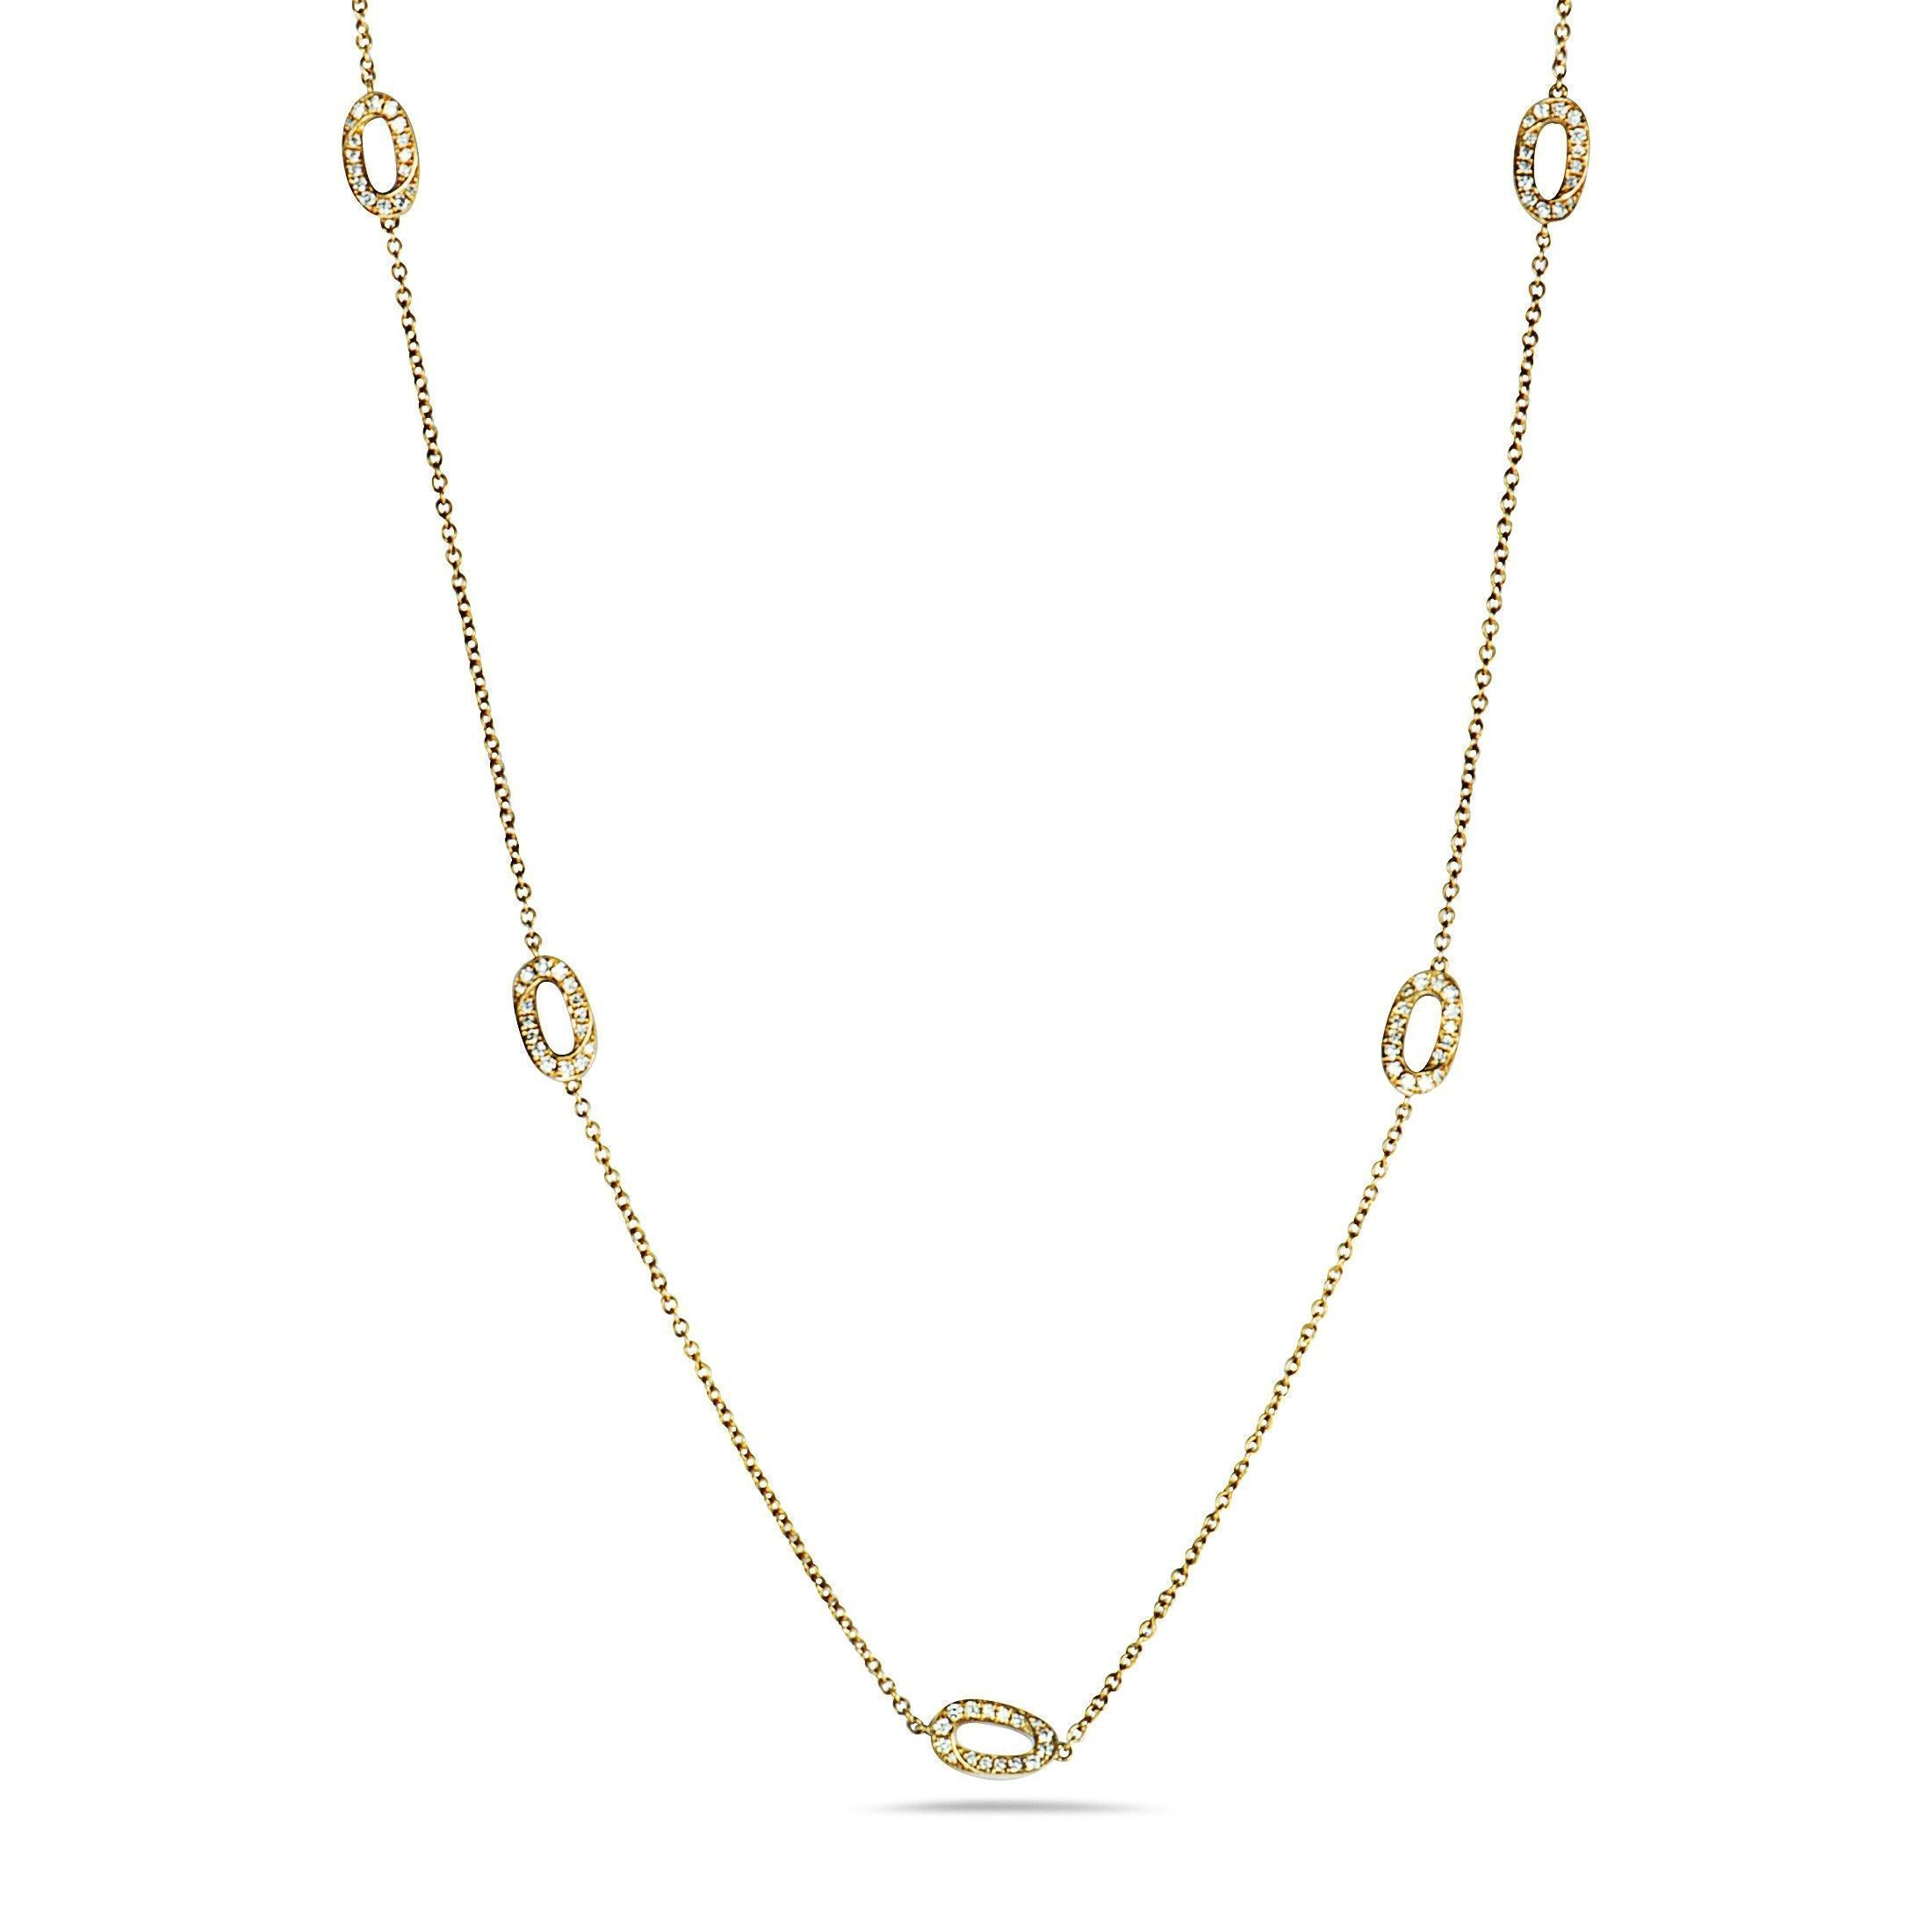 Lb Exclusive 18k Yellow Gold Diamond Oval Long Sautoir Necklace Pertaining To Most Up To Date Yellow Gold Diamond Sautoir Necklaces (View 9 of 25)